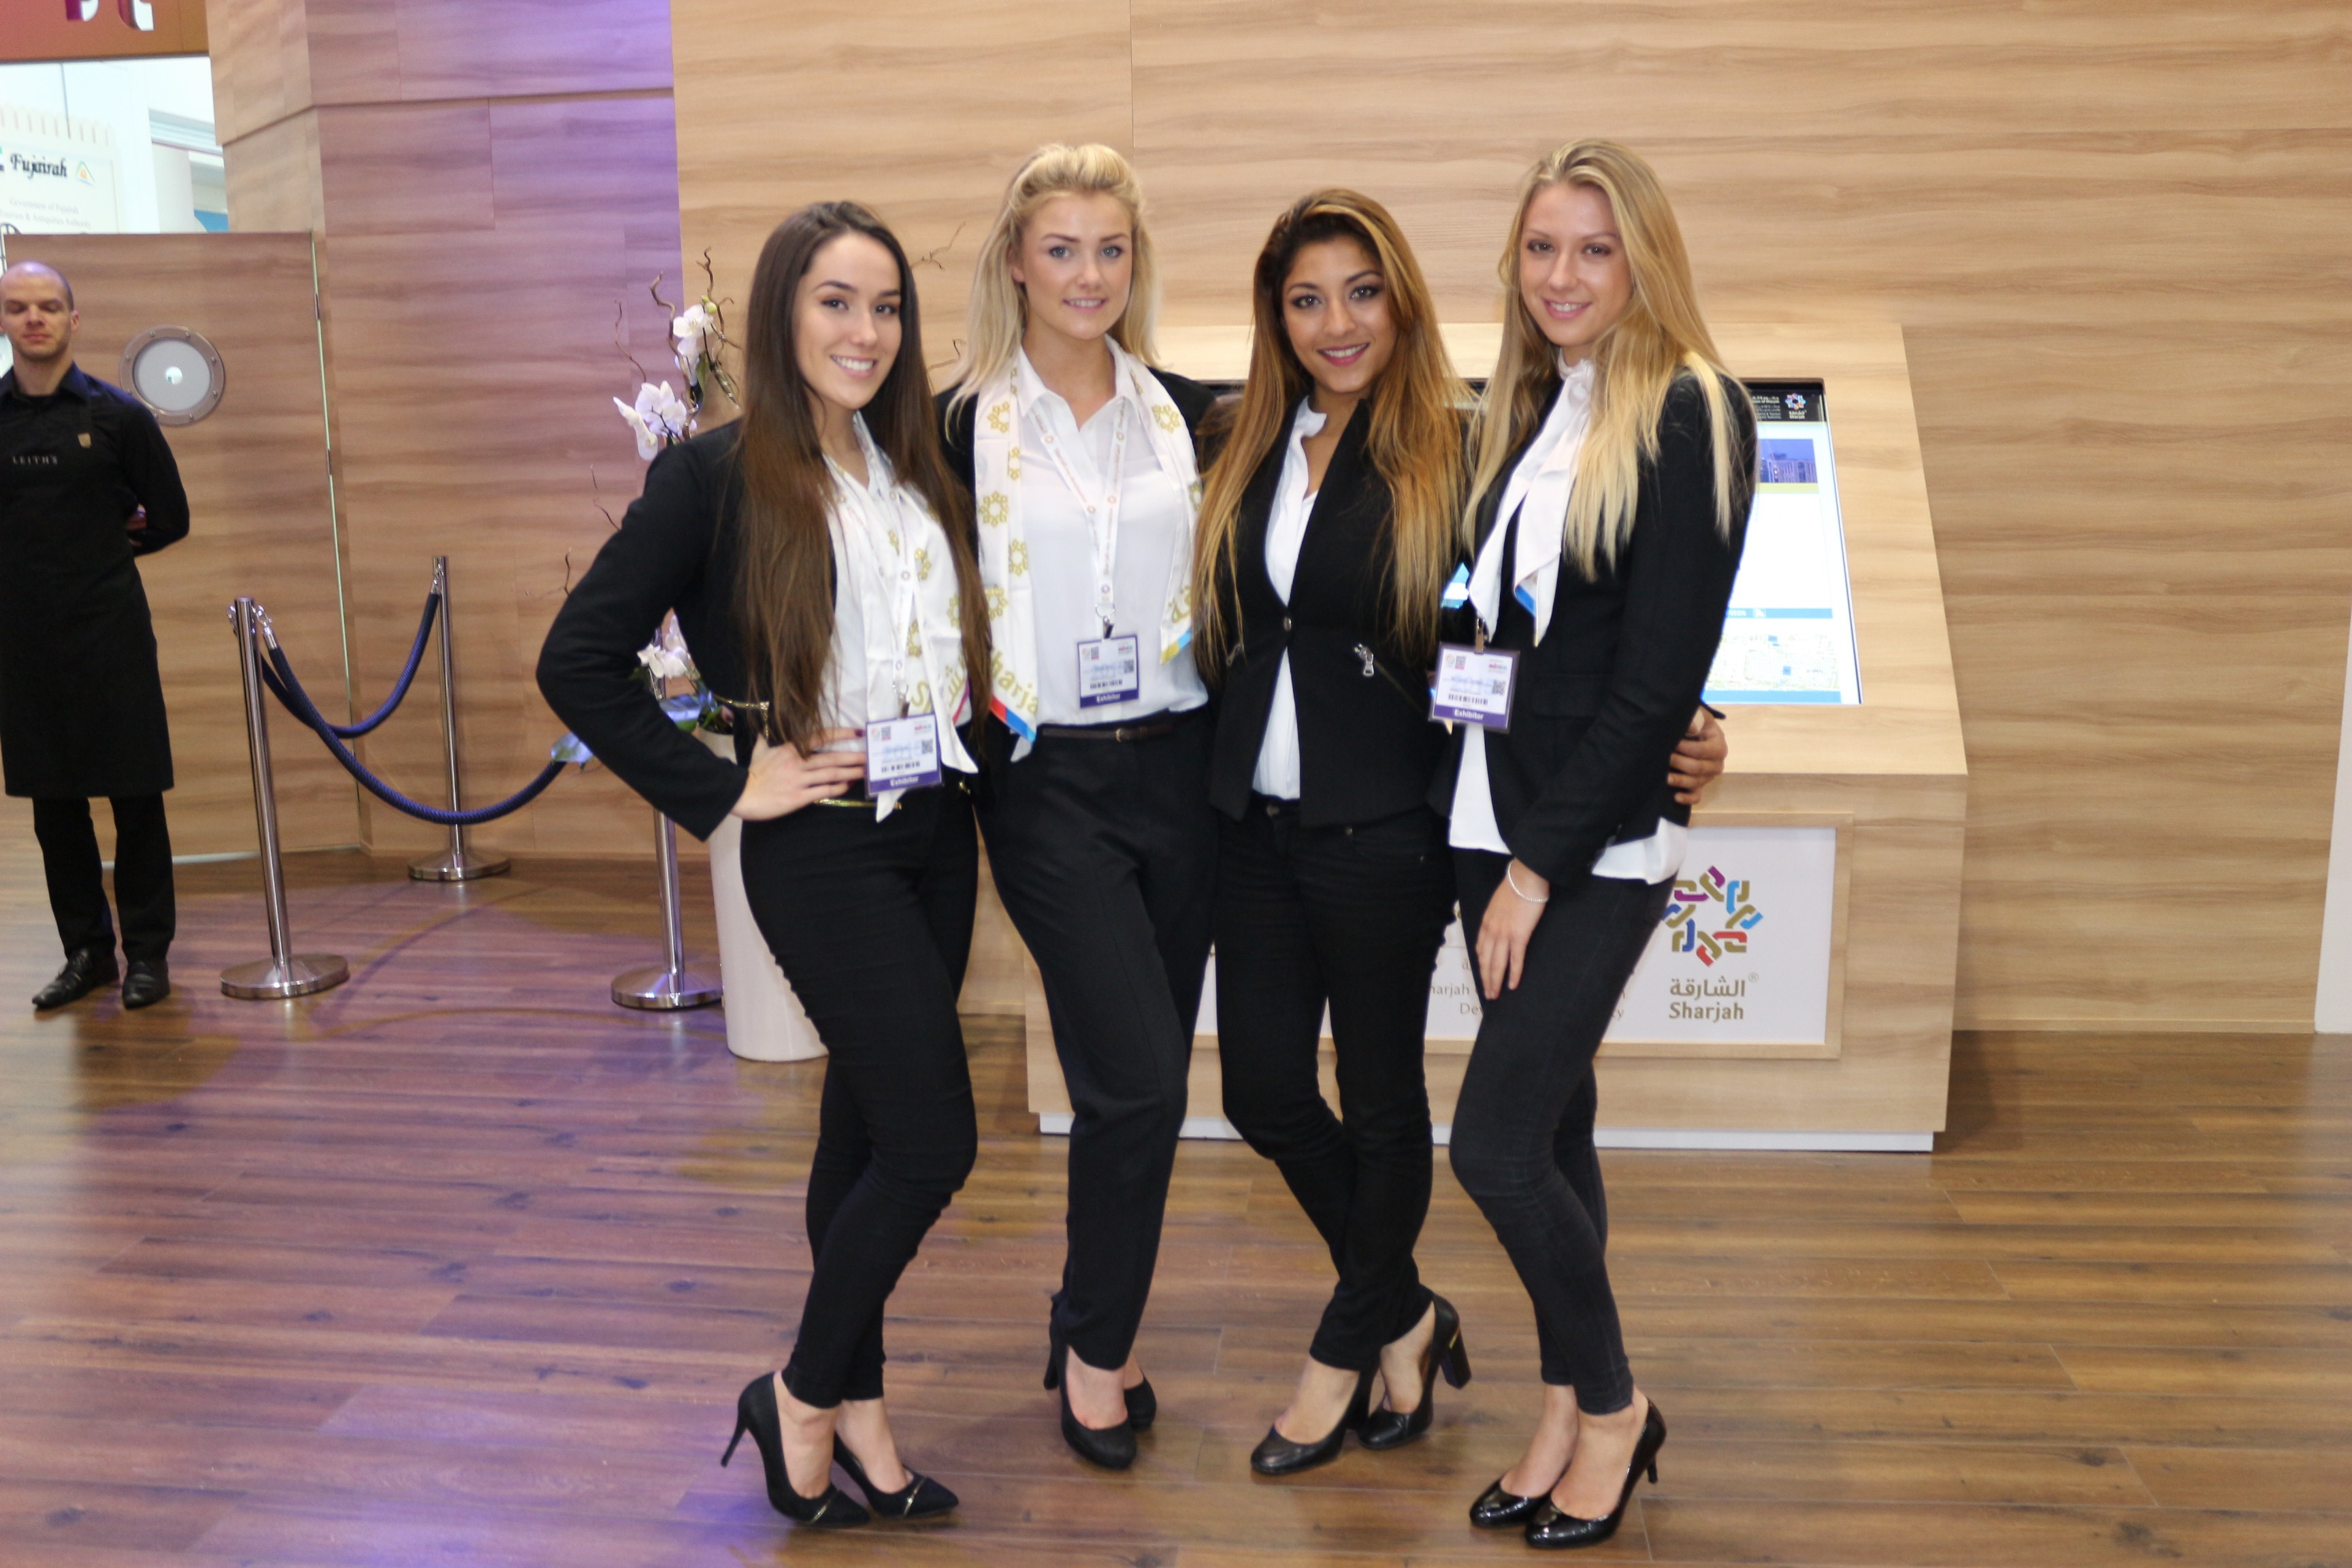 Hostess Agency for bookings at events